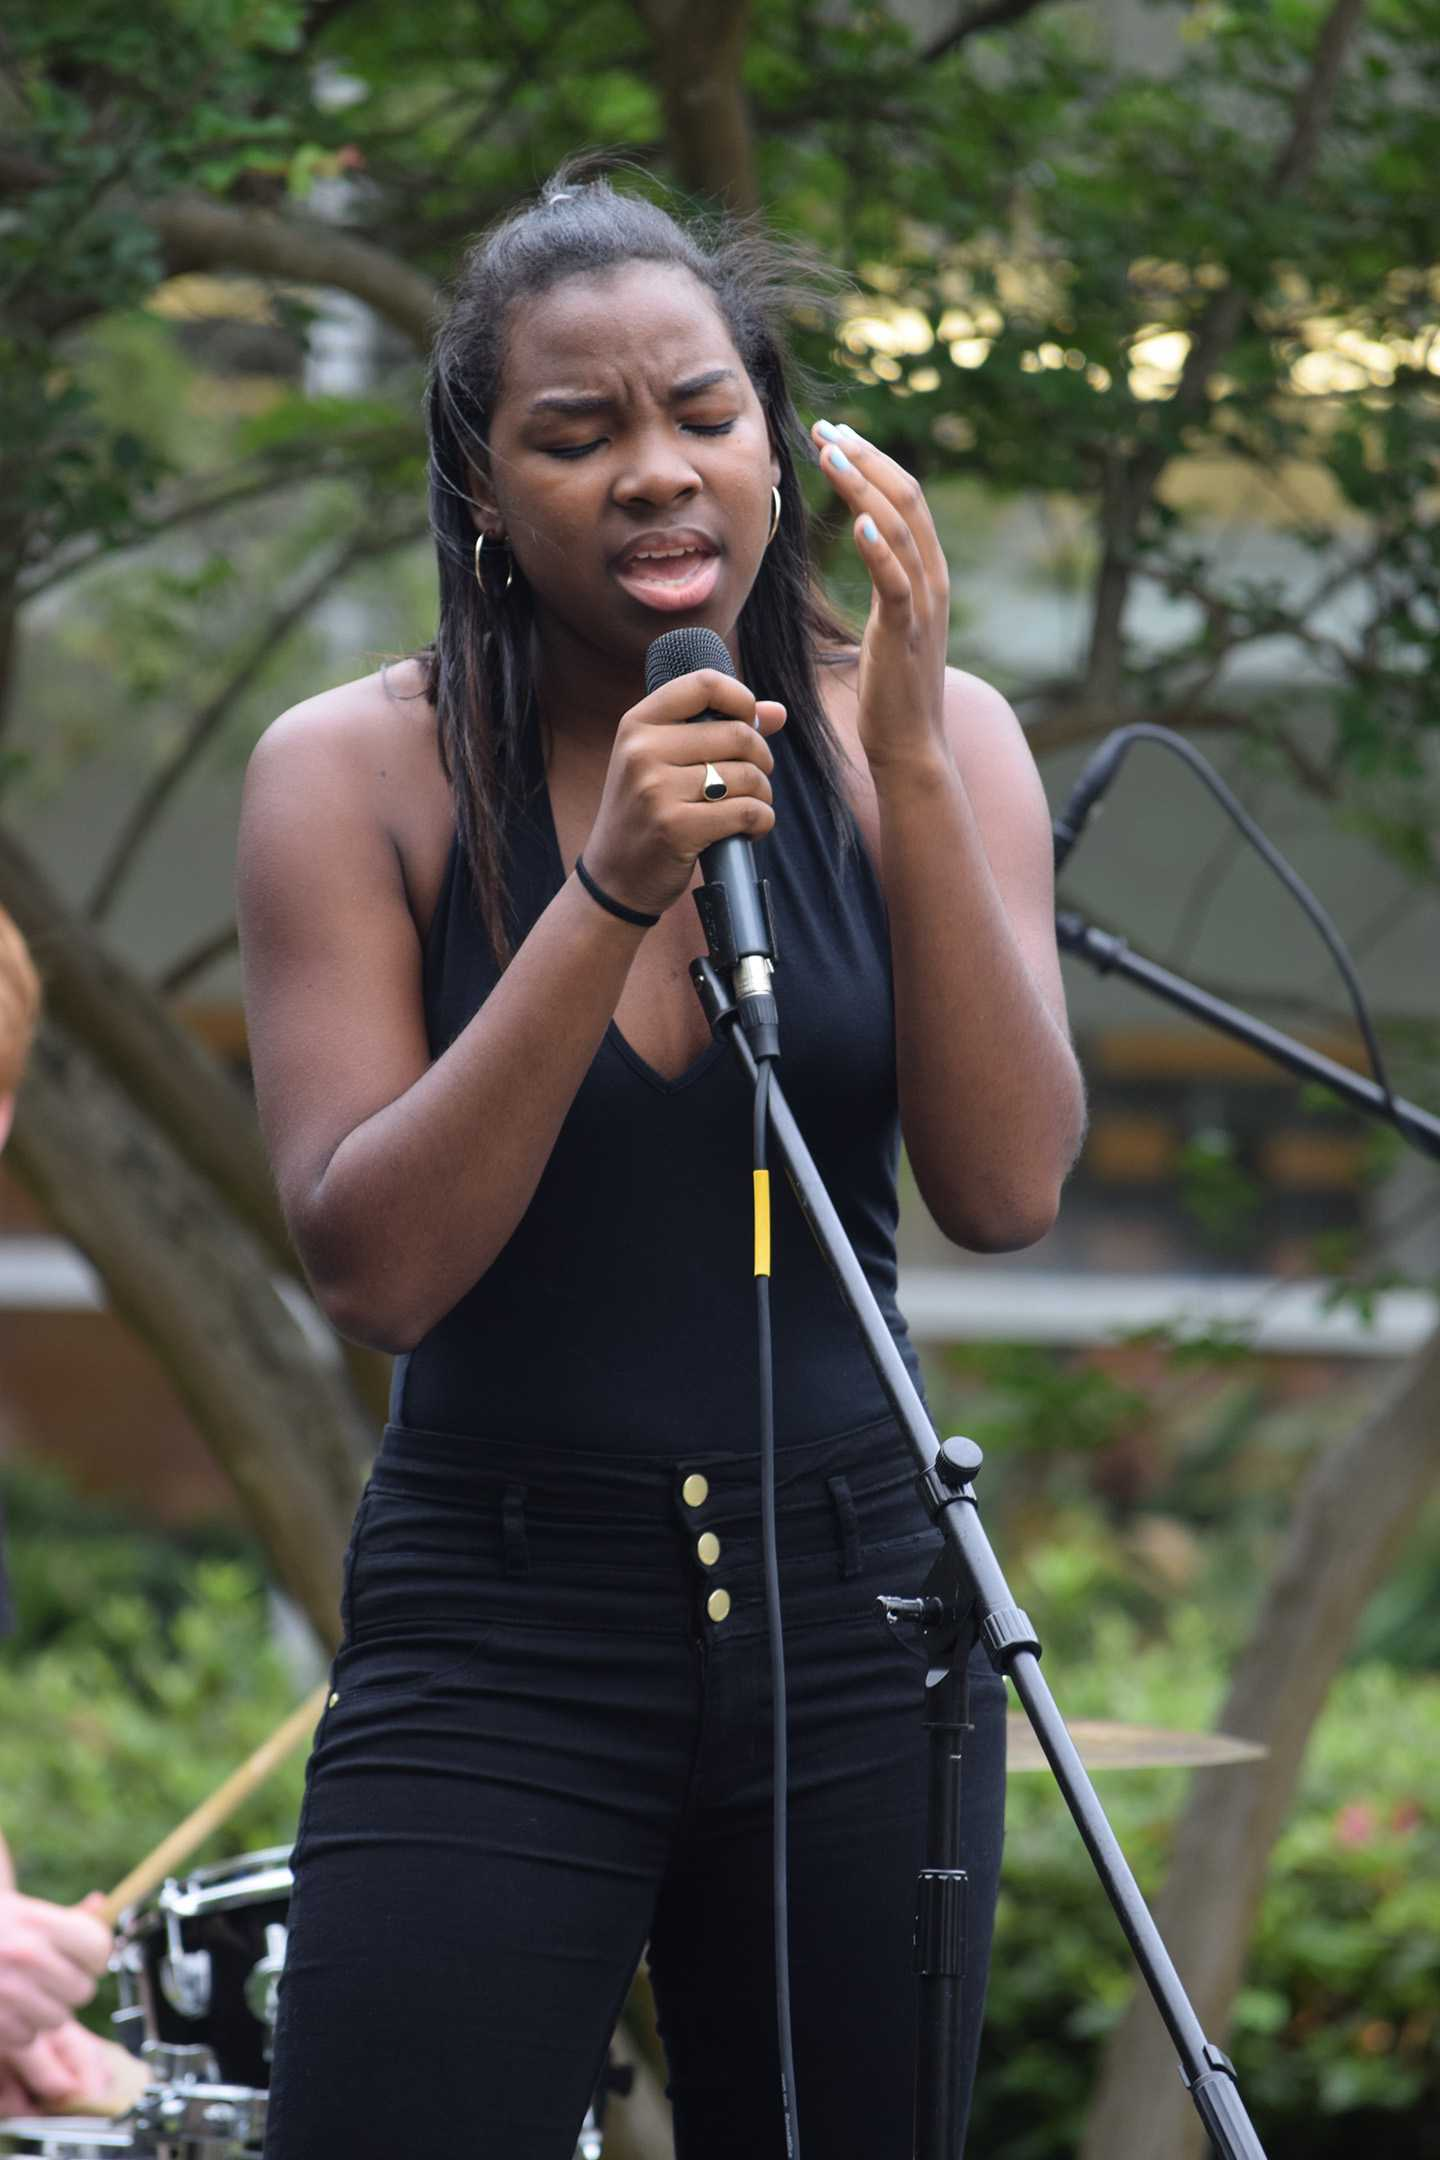 Kayla+Mims+sings+during+Delta+Jamma.+Members+of+the+Delta+Gamma+sorority+hosted+their+first+philanthrophic+music+festival%2C+Delta+Jamma%2C+on+Saturday%2C+April+16.+